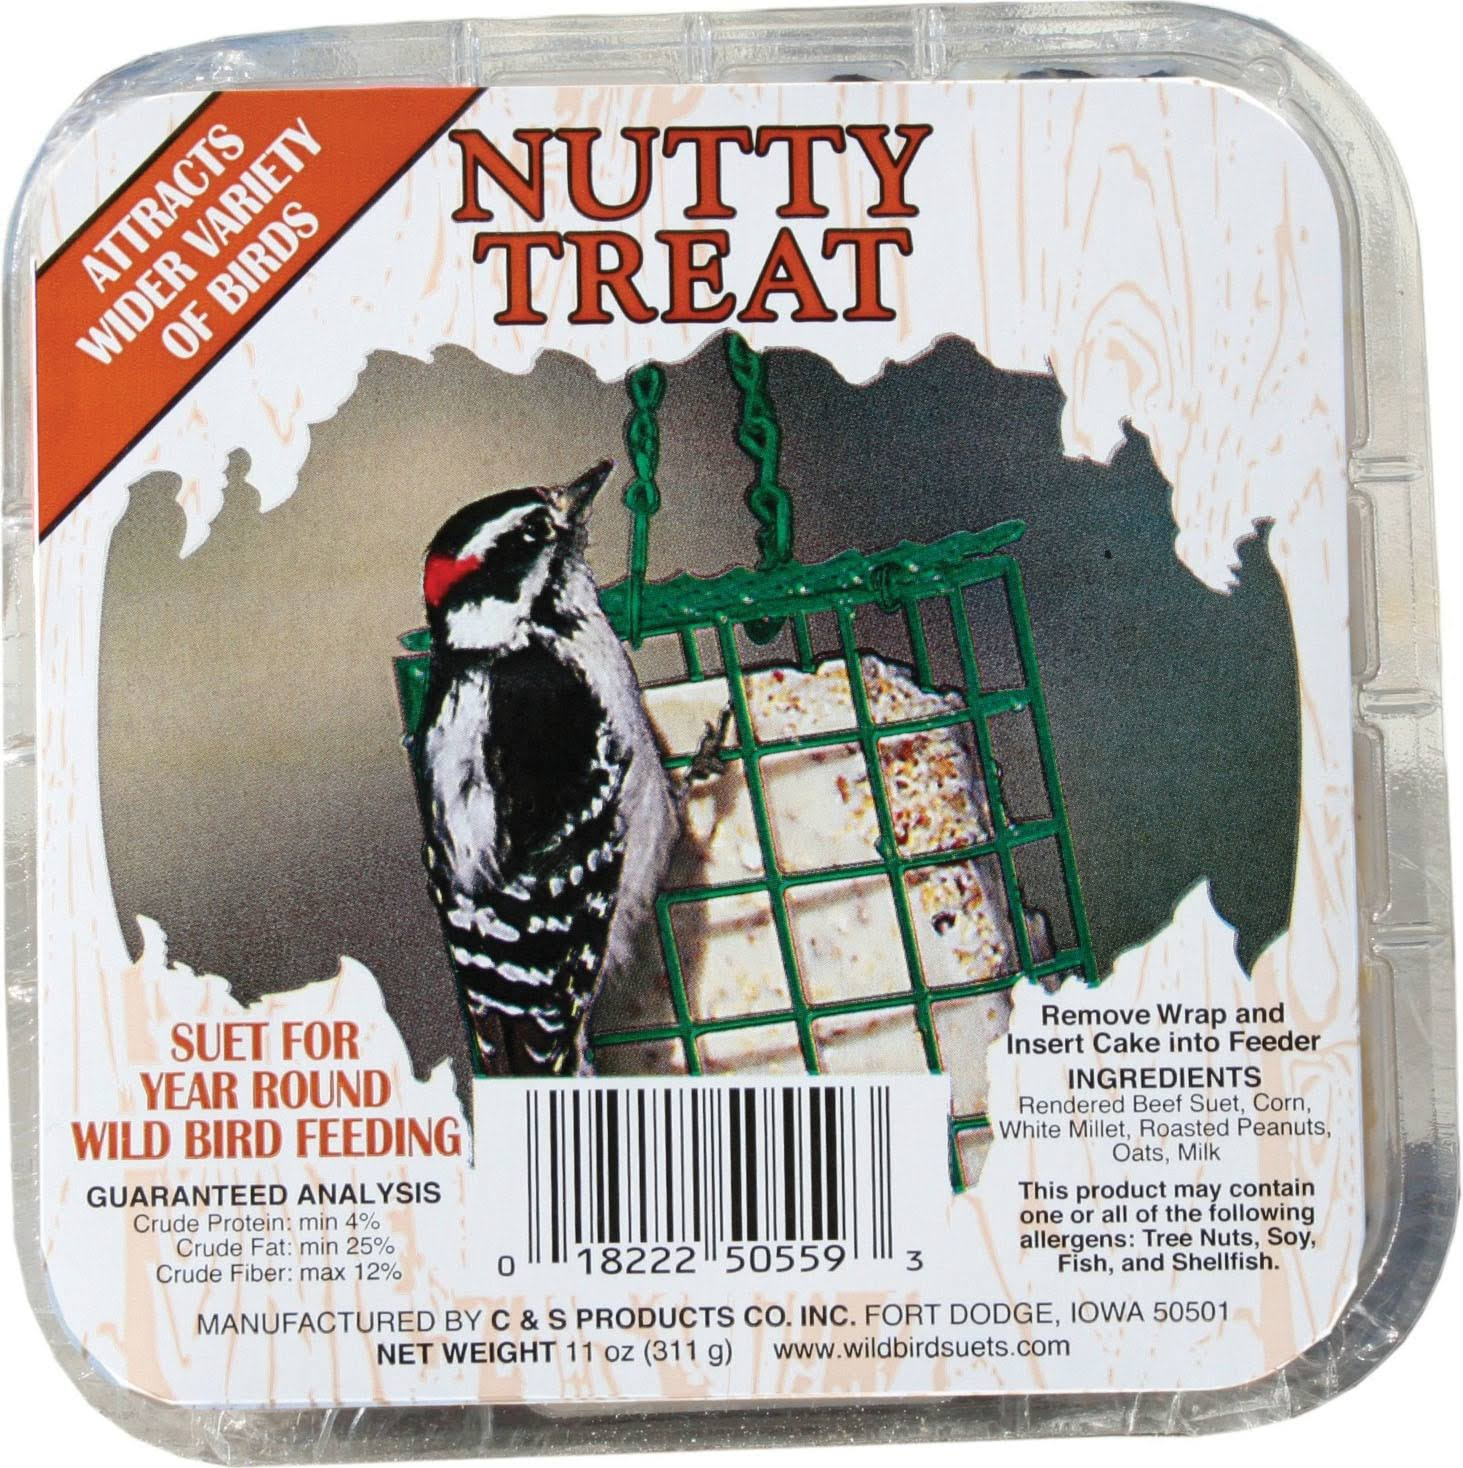 C. & S. Products Nutty Treat Suet